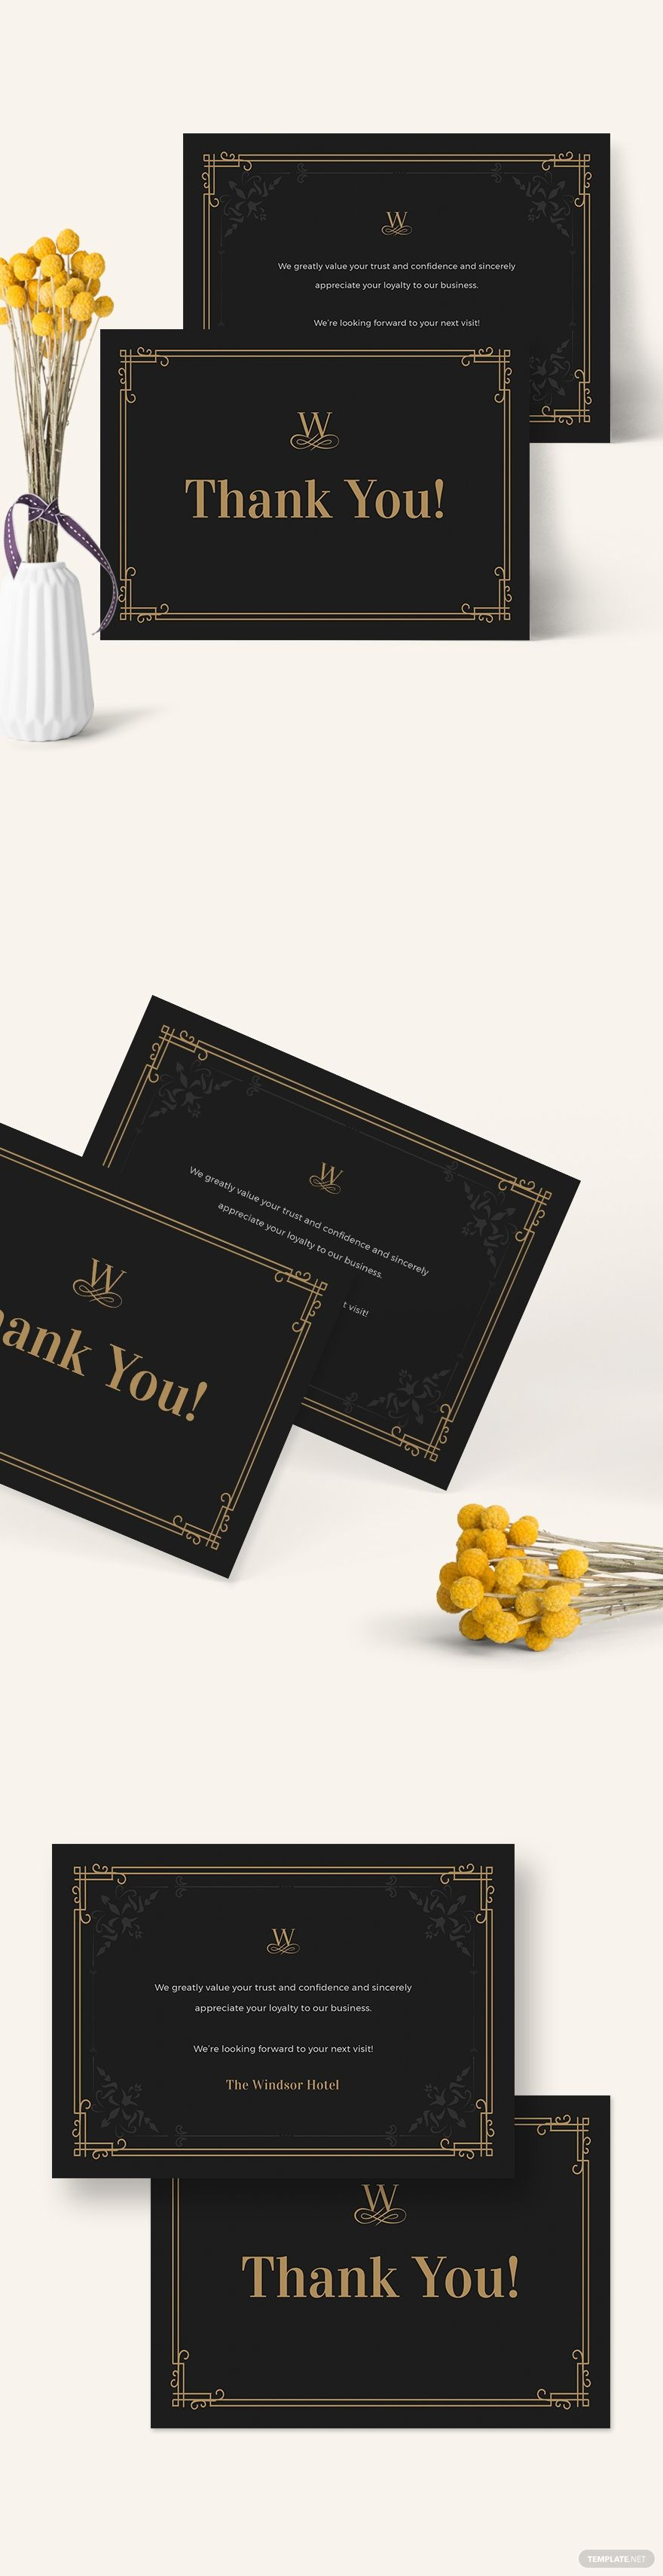 Vintage Thank You Card Template Ad Affiliate Vintage Card Template Happy Valentines Day Card Thank You Card Template Valentines Day Cards Handmade